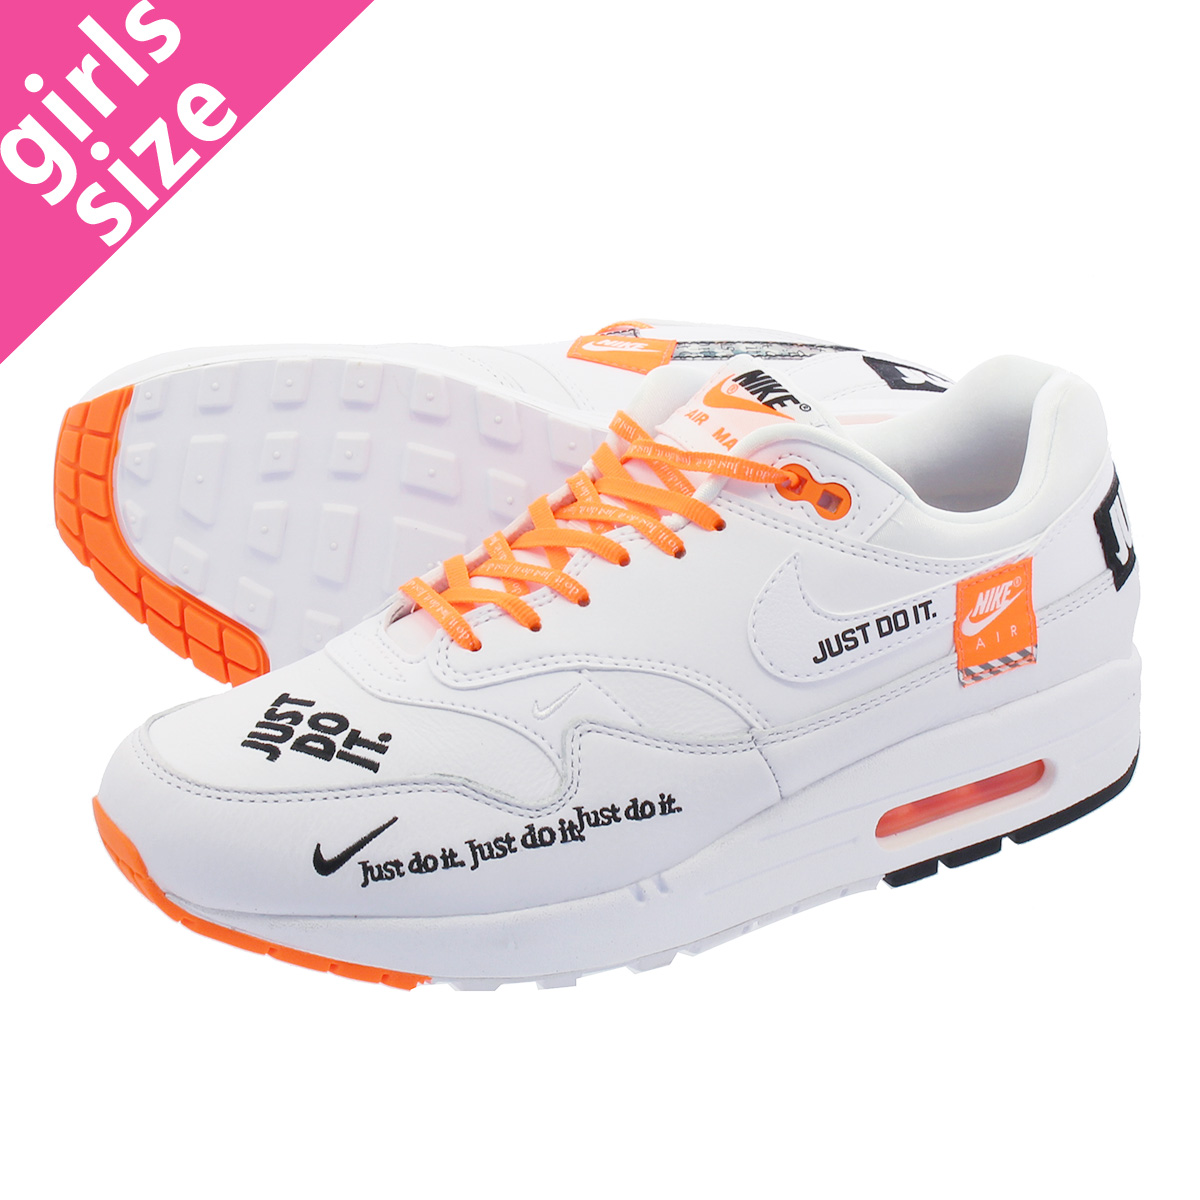 nike WMNS AIR MAX 1 LX WHITEBLACK TOTAL ORANGE bei